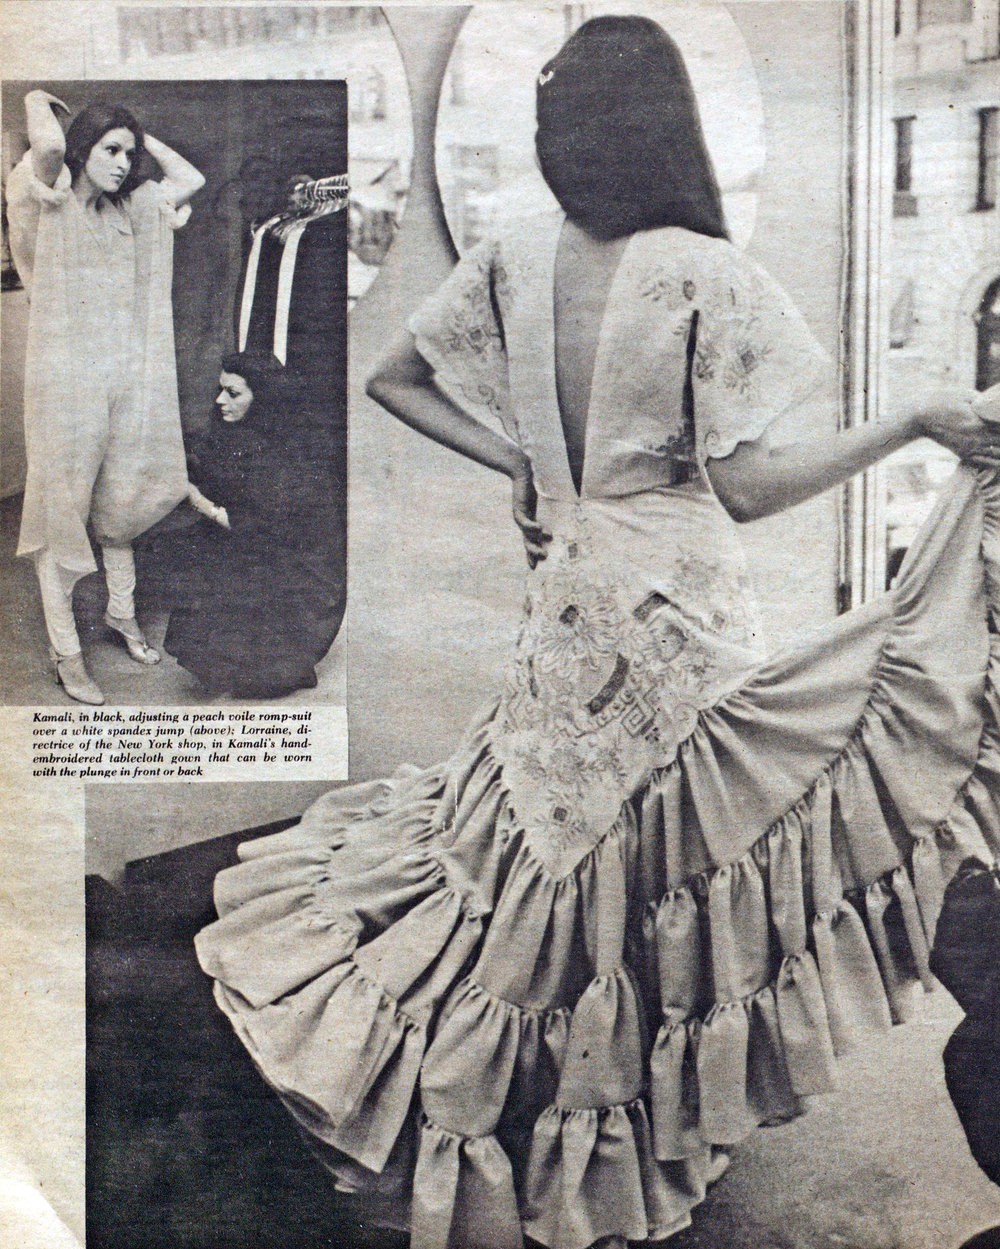 A dress made from a hand-embroidered tablecloth. WWD, April 15, 1977.